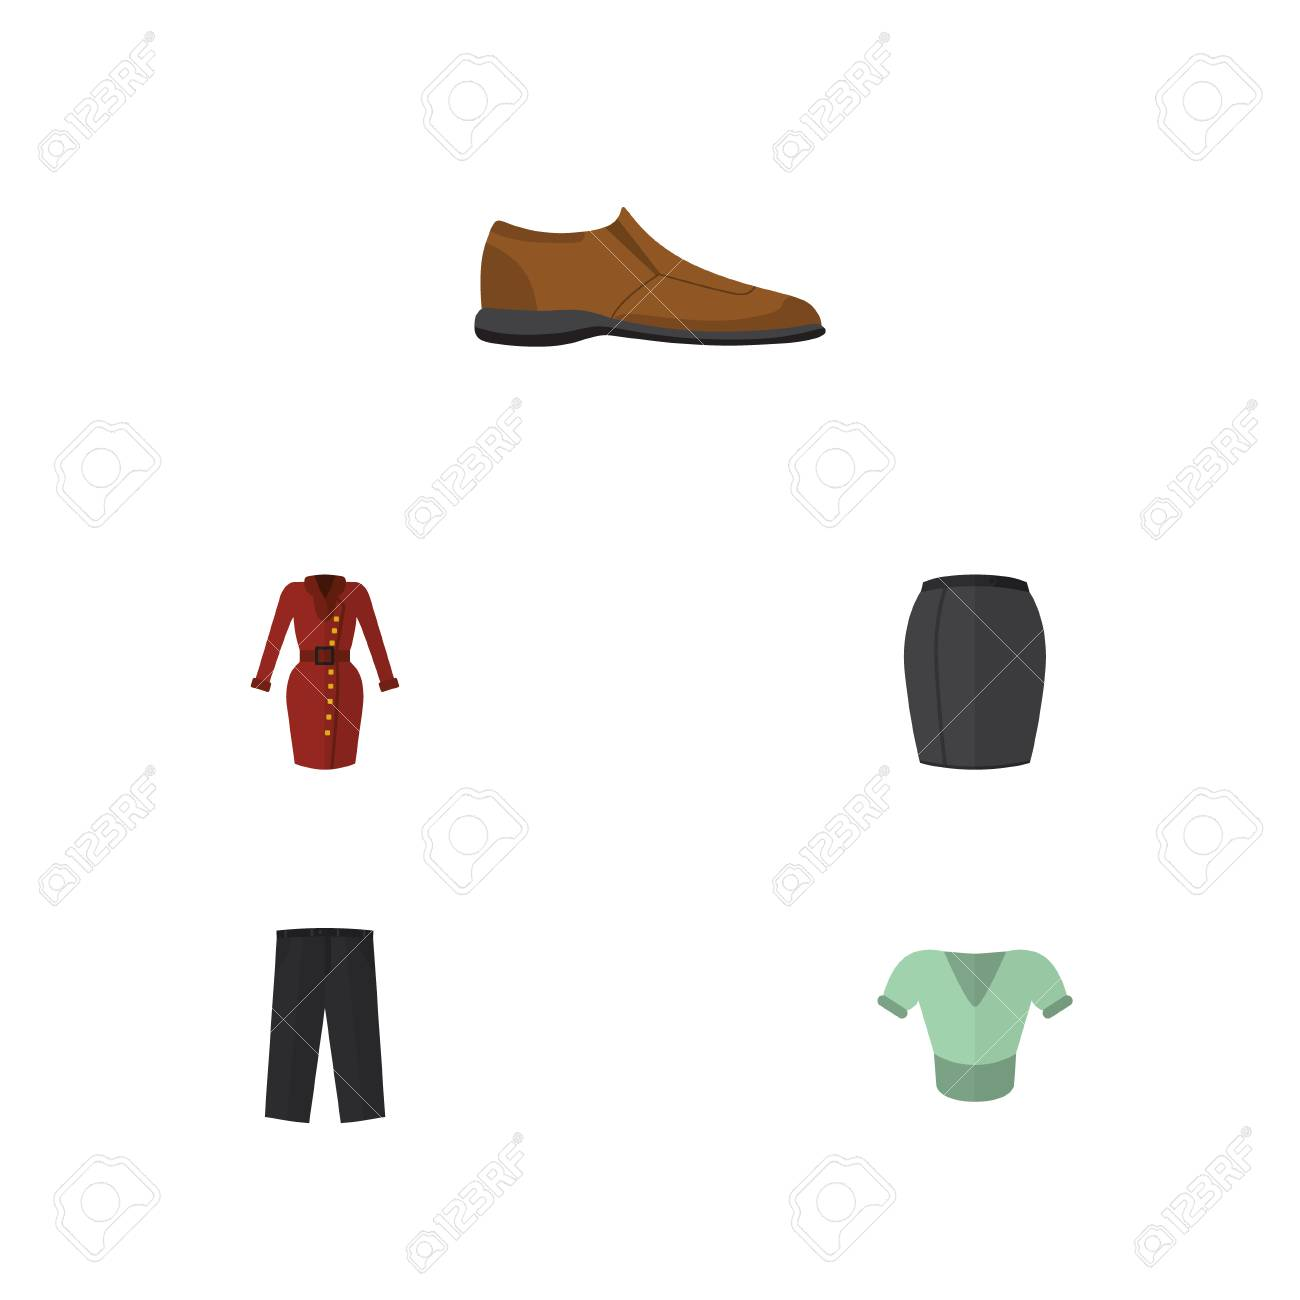 Flat Clothes Set Of Pants Casual Stylish Apparel And Other Shoes Vector Objects Also